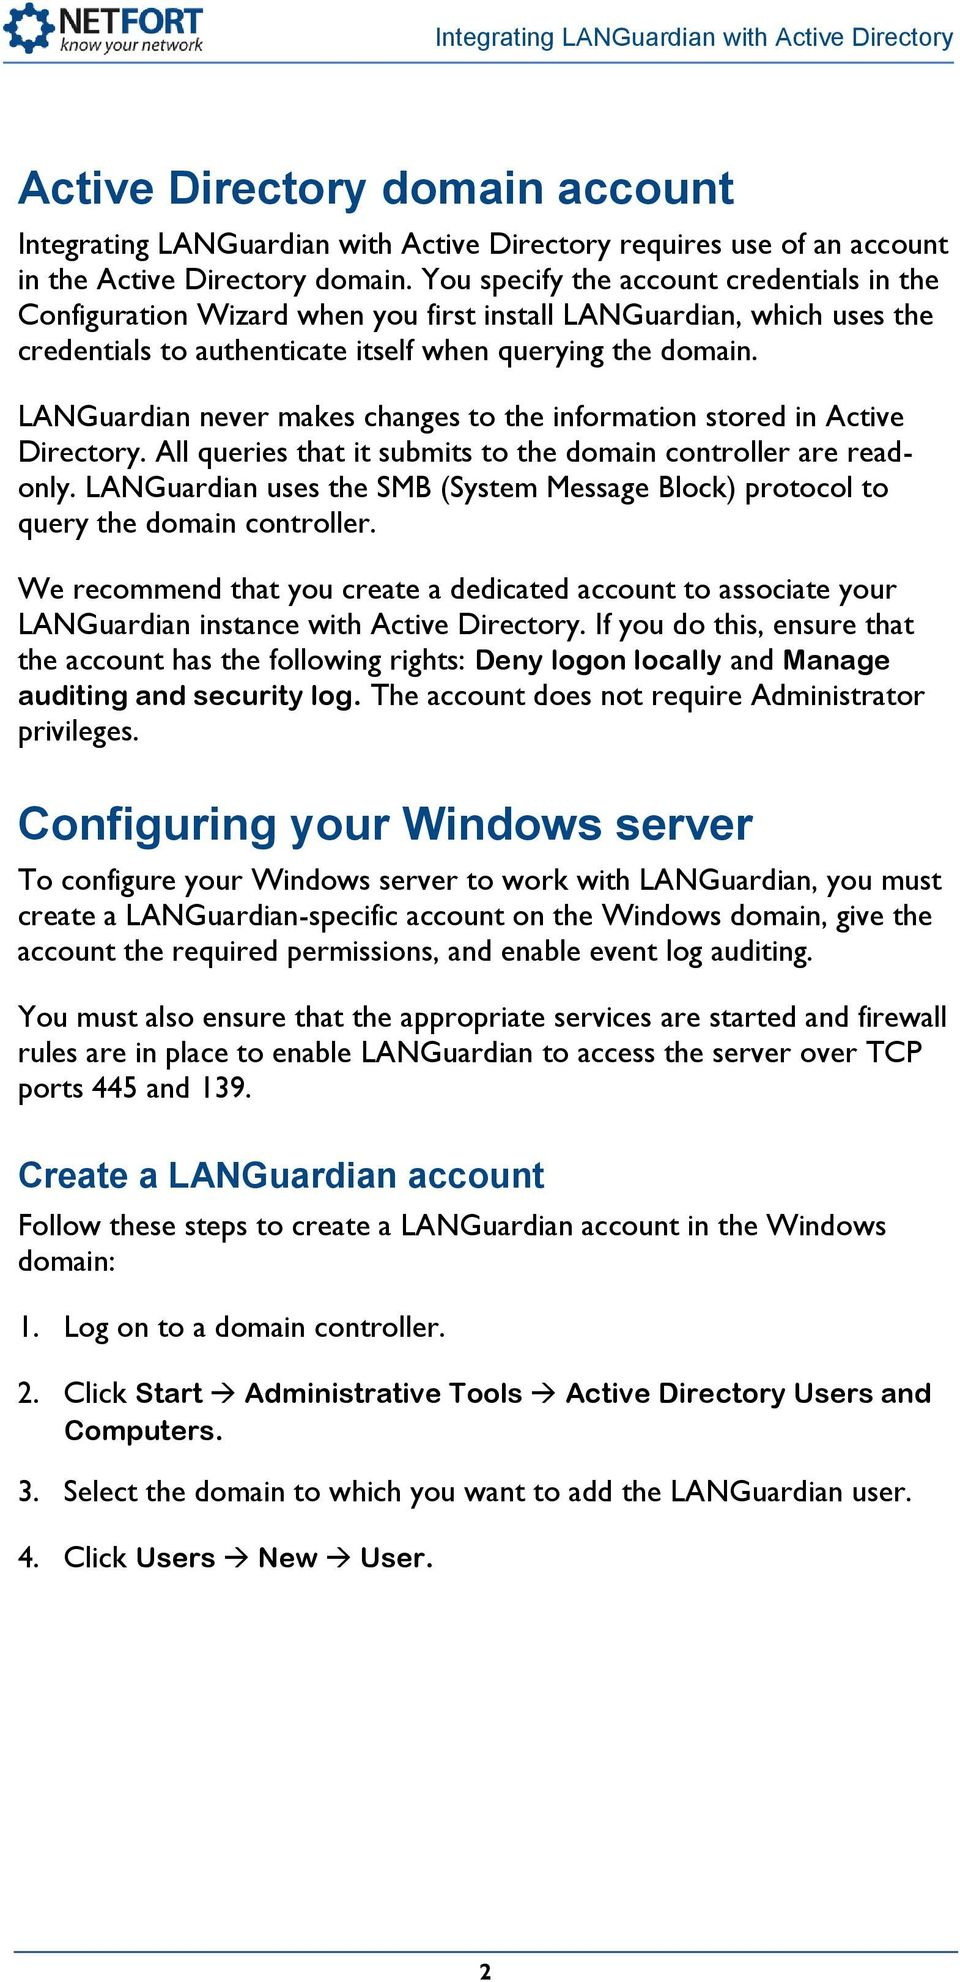 LANGuardian never makes changes to the information stored in Active Directory. All queries that it submits to the domain controller are readonly.